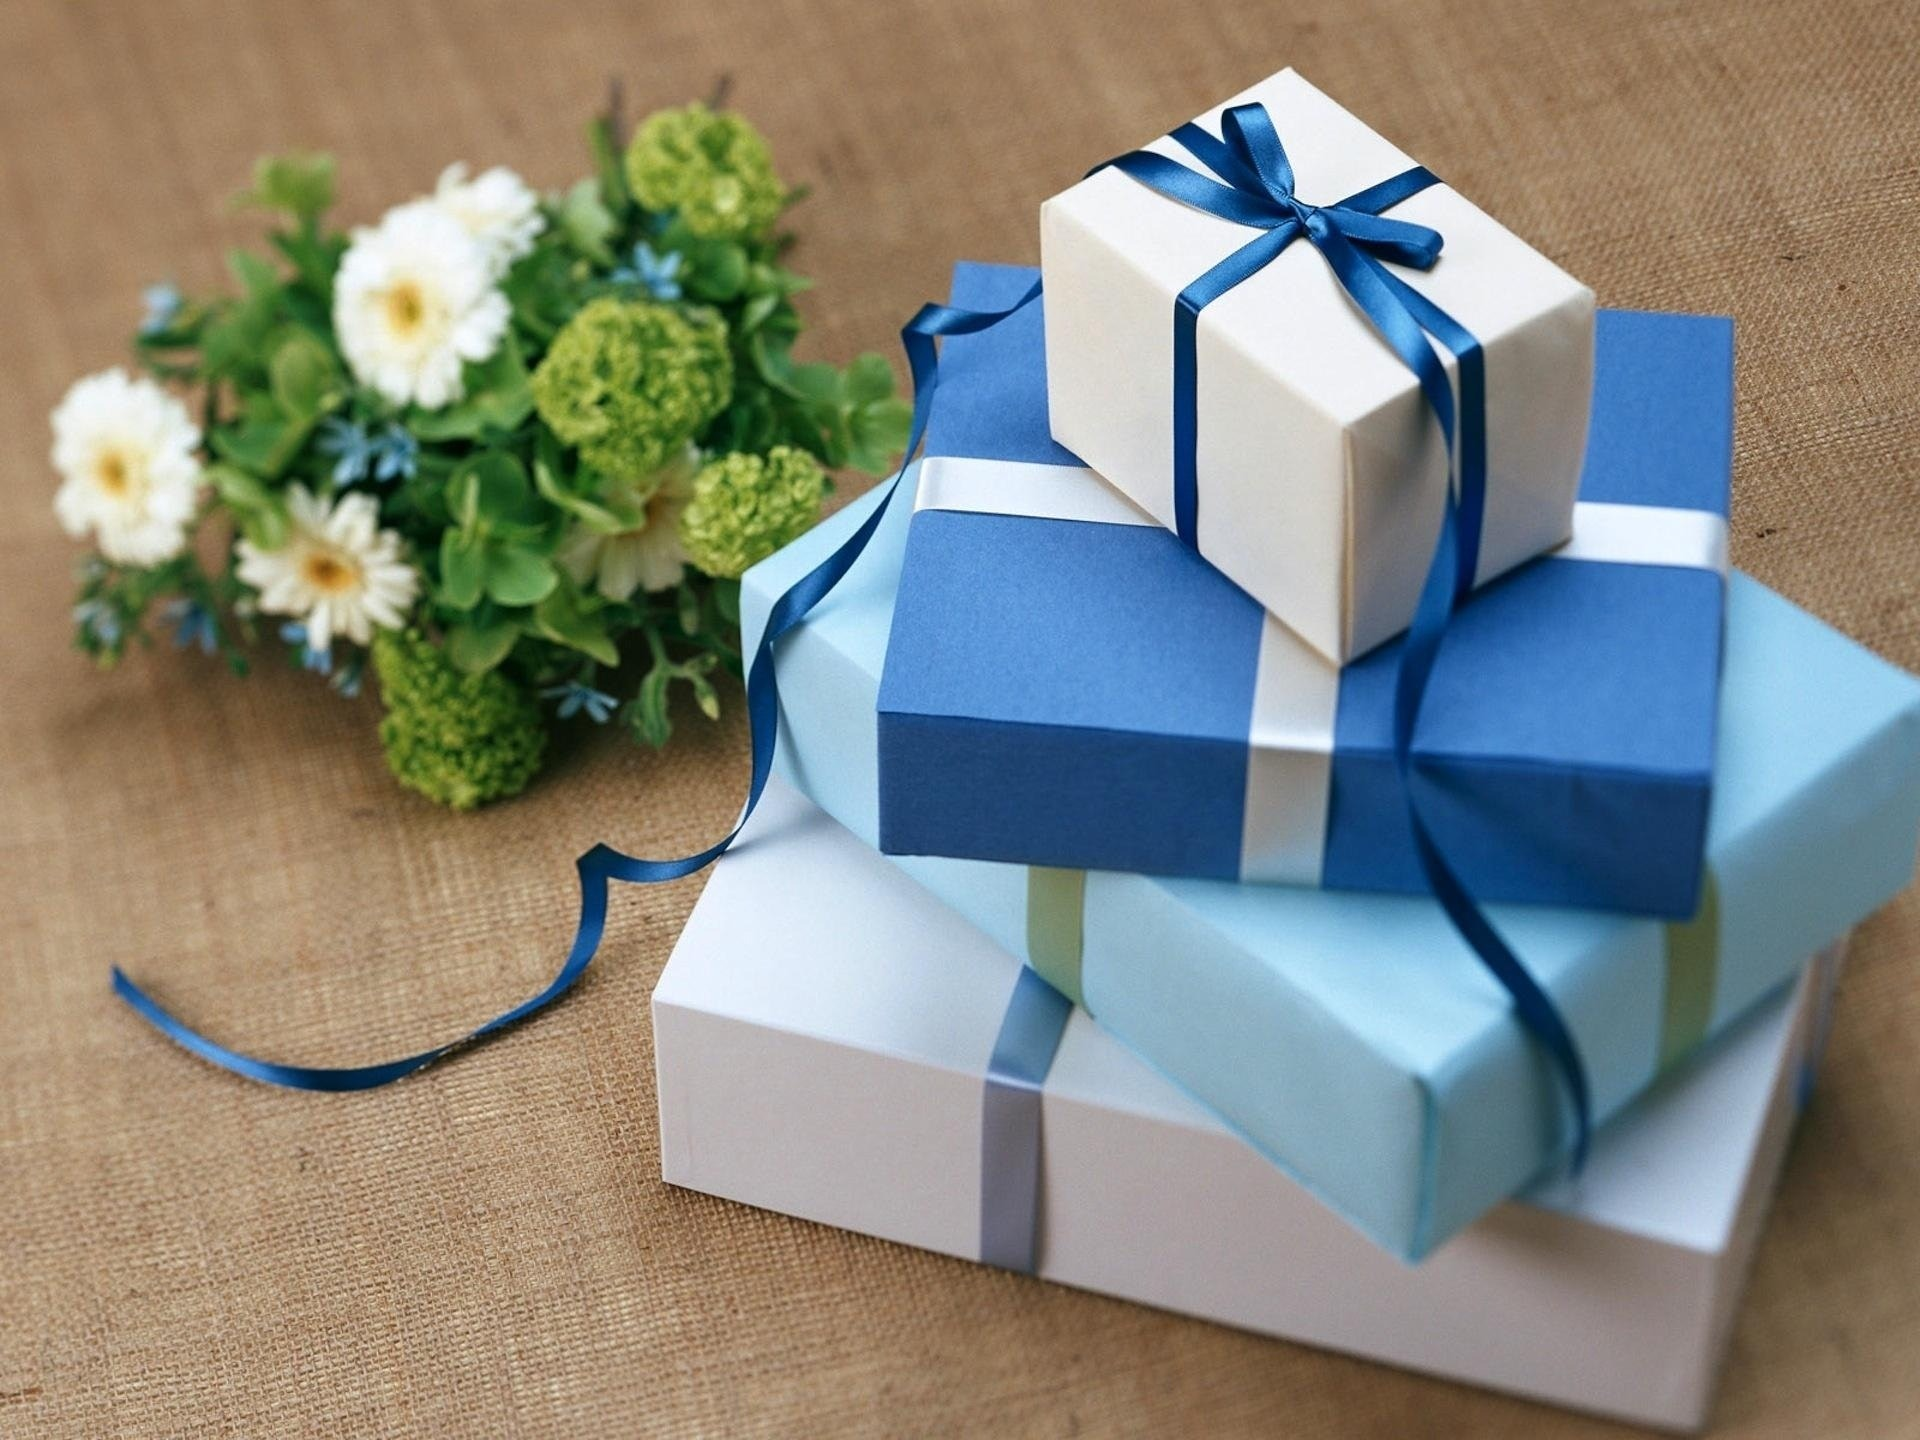 3 Steps to Promoting Your Brand Through Thoughtful Gifting